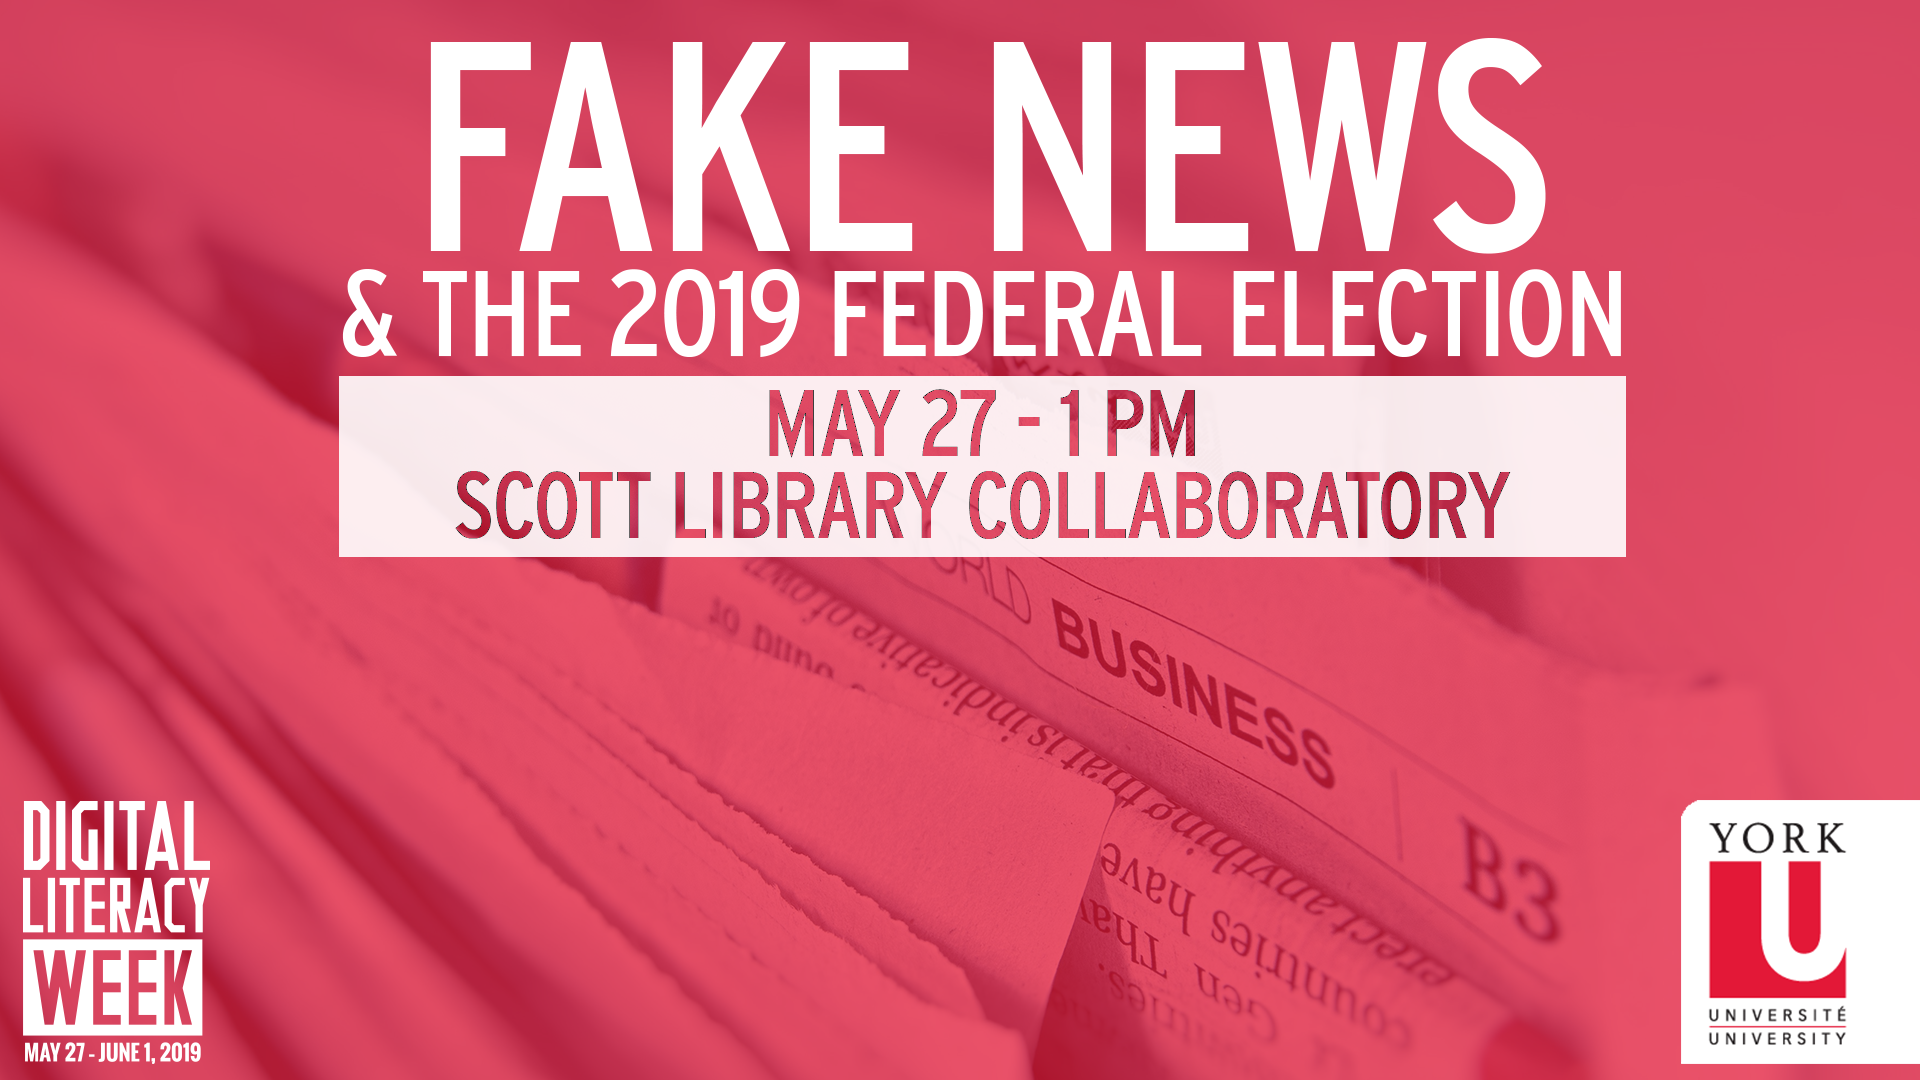 A red graphic promoting a Digital Literacy Week event titled Fake News and the 2019 Federal Election